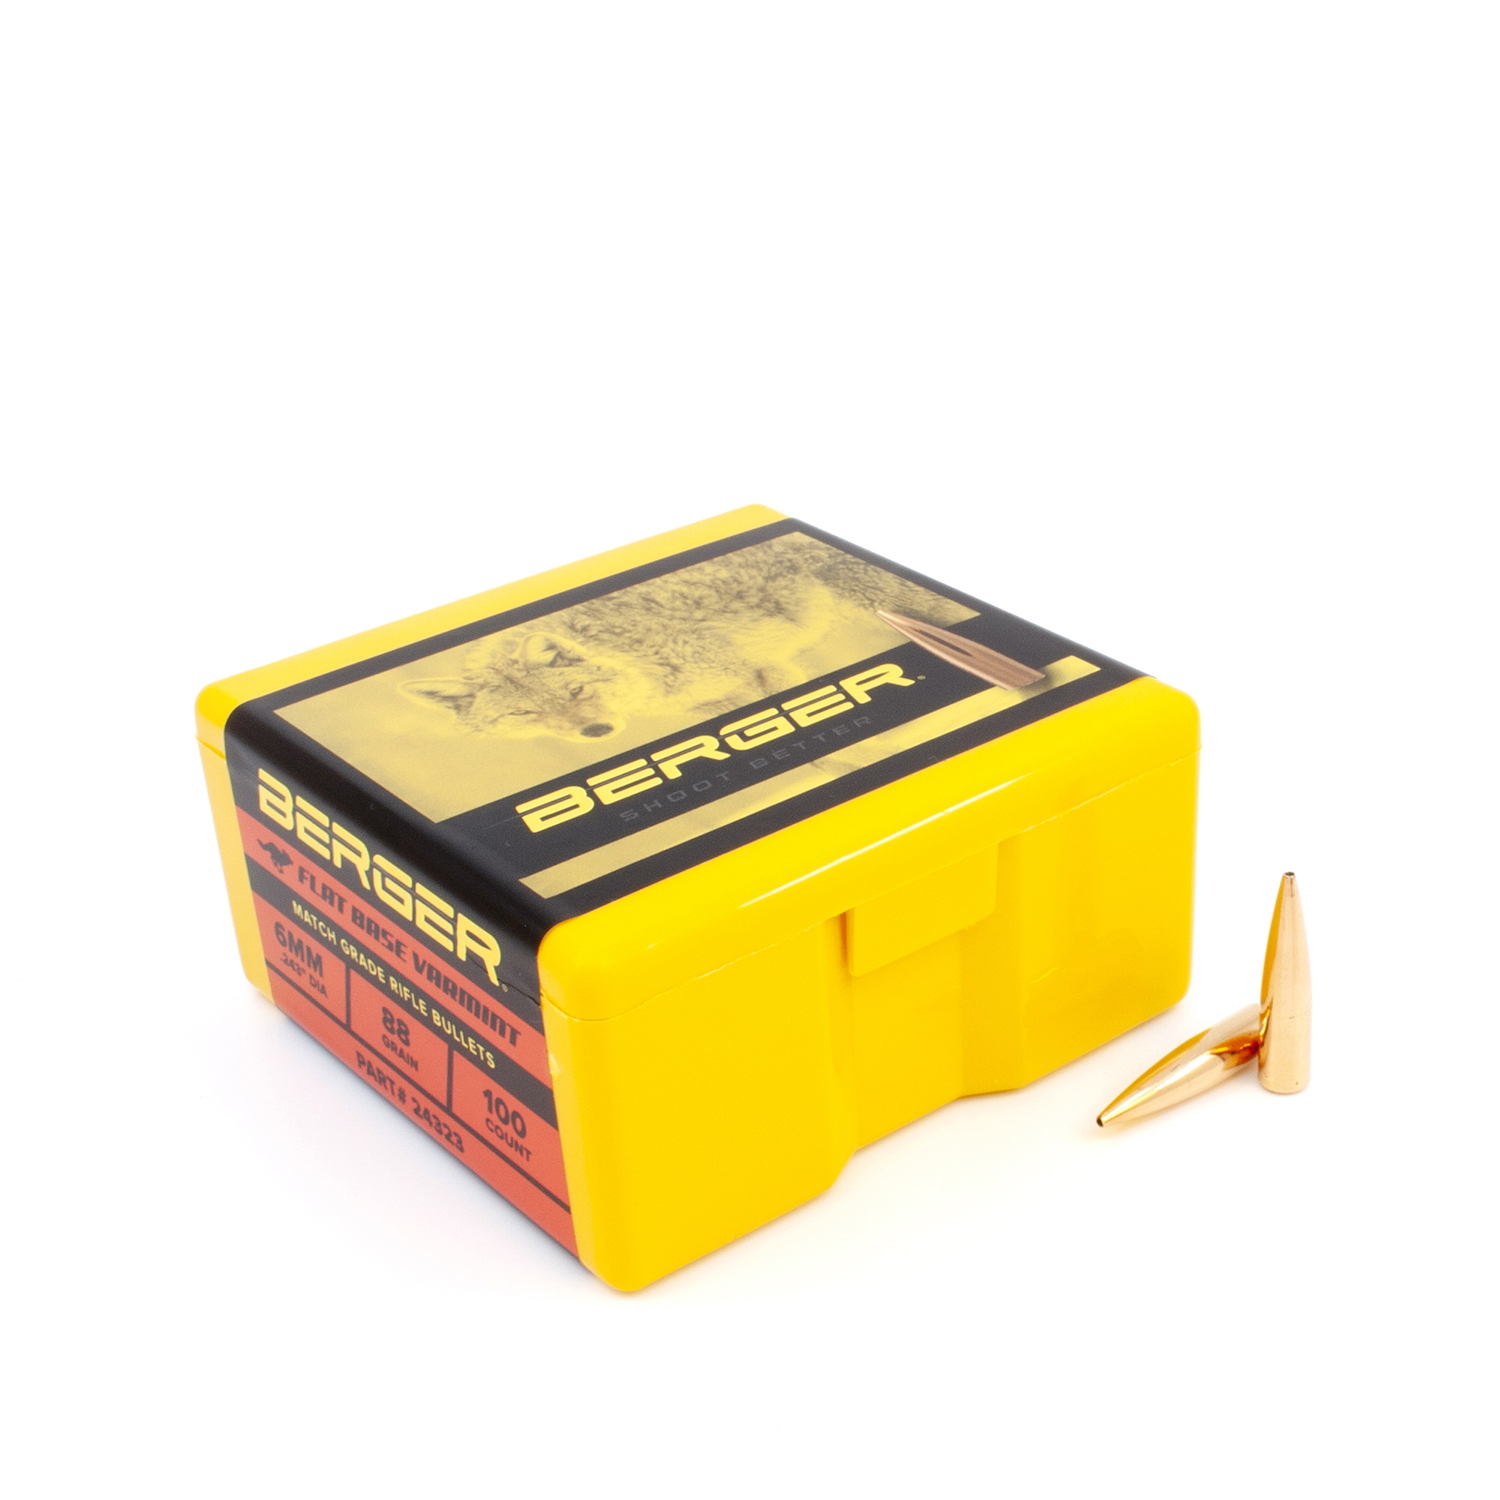 Berger Bullets - 6mm, 88 gr. High BC Varmint FB - Box of 100